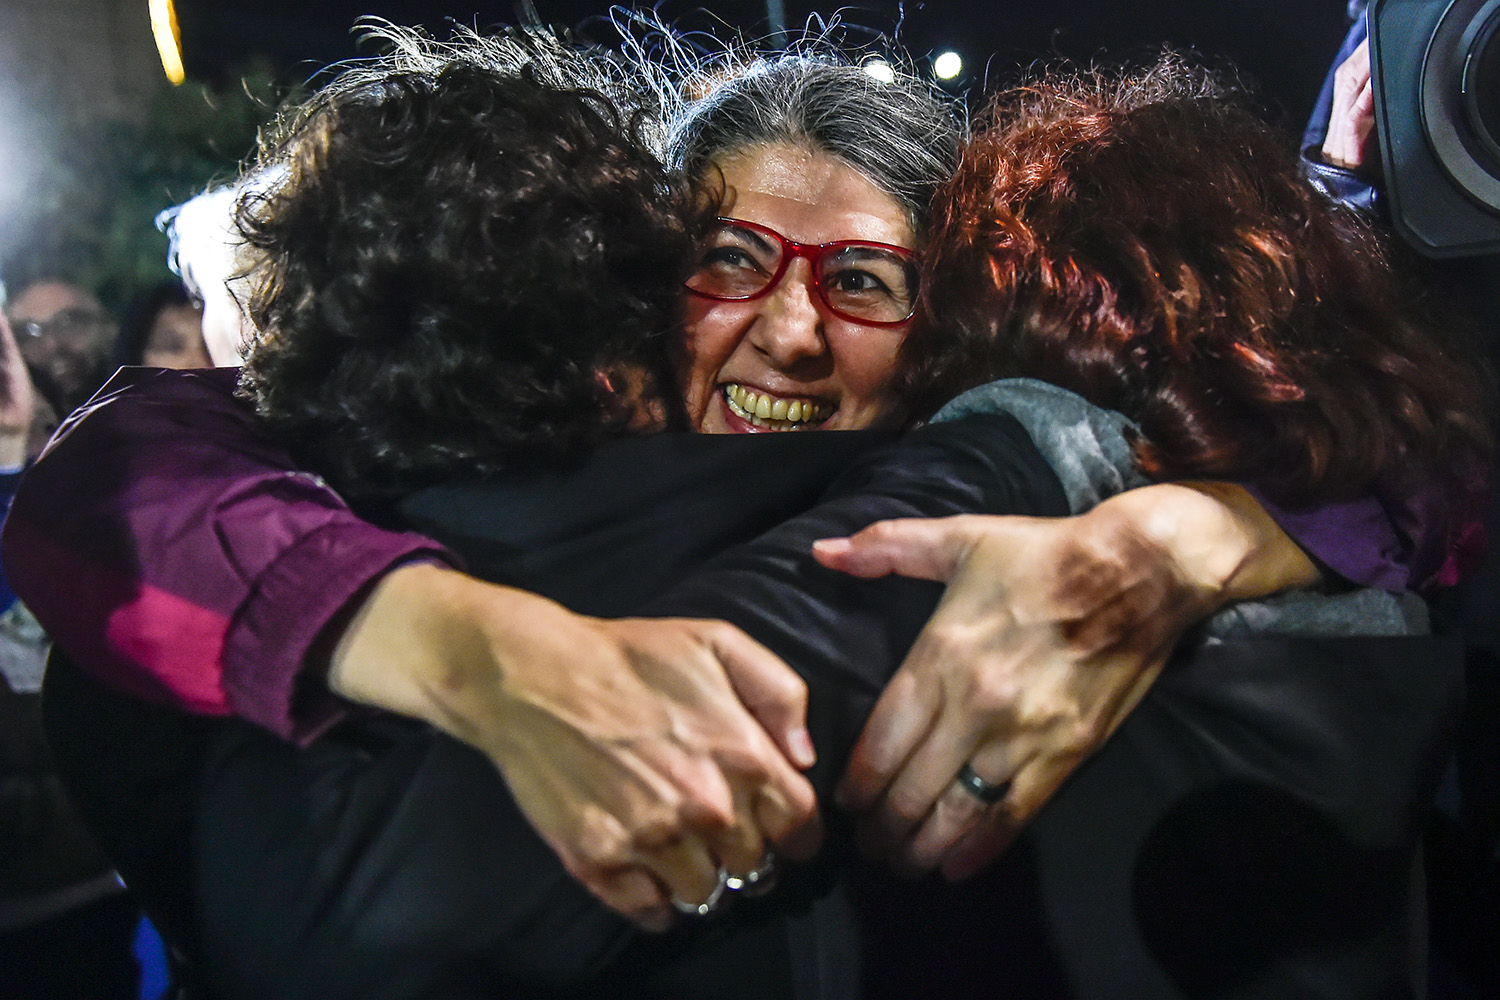 TOPSHOT - Ozlem Dalkiran (C), member of Citizens' Assembly is seen after her release from Silivri prison in Istanbul on October 26, 2017. Eight human rights activists, including Amnesty International's Turkey director Idil Eser, were greeted by celebrating relatives and supporters as they were released from jail near Istanbul early on October 26. / AFP PHOTO / YASIN AKGUL        (Photo credit should read YASIN AKGUL/AFP/Getty Images)